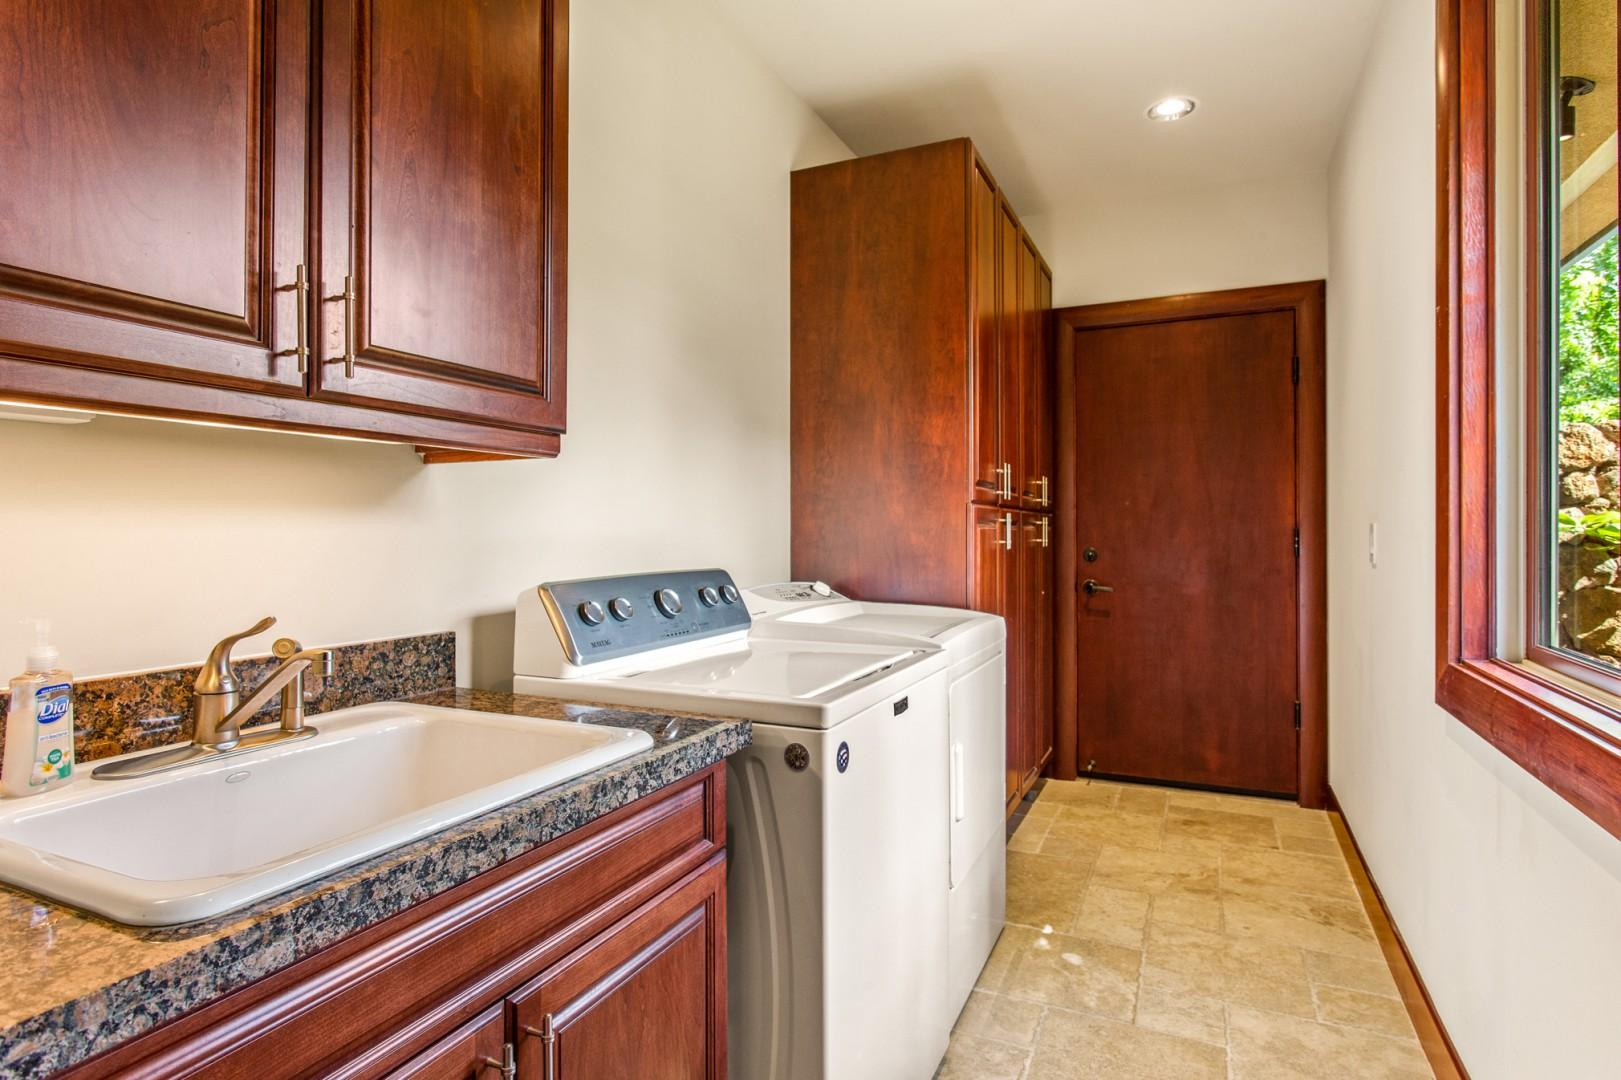 The home's dedicated laundry room with sink, counter prep space, and supplied detergent and dryer sheets provides all you'll need in your home away from home.